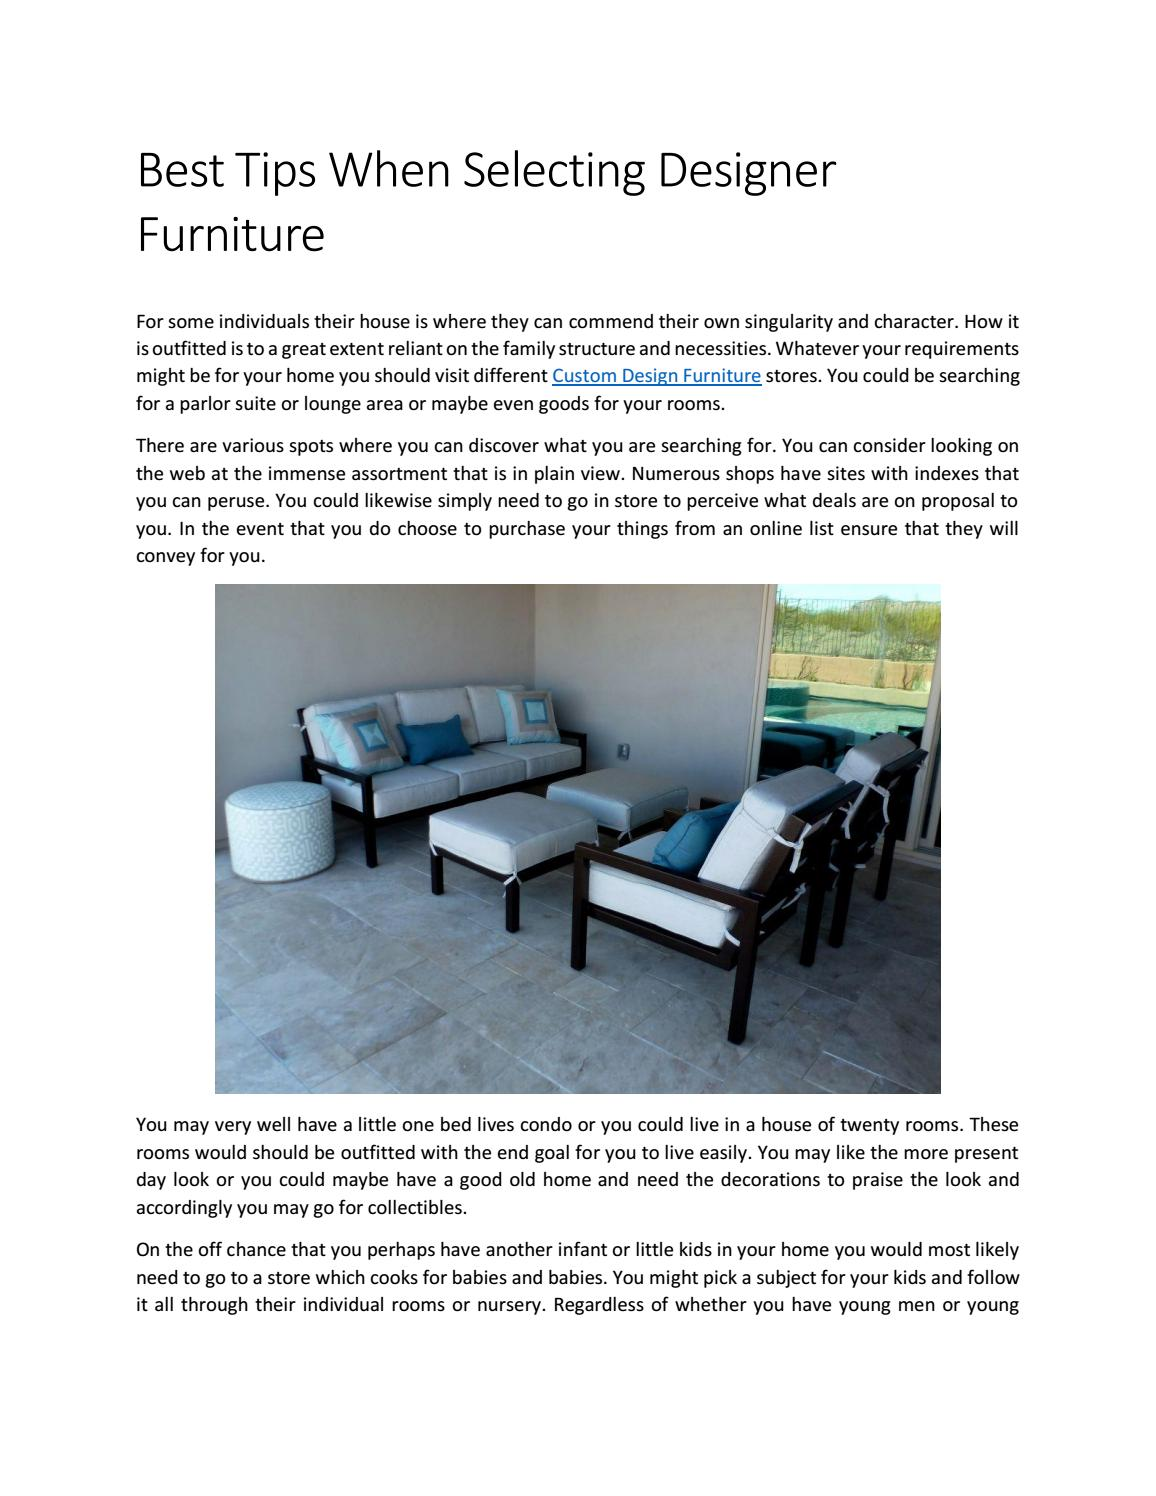 Best Tips When Selecting Designer Furniture By Arizonafurniture85 Issuu